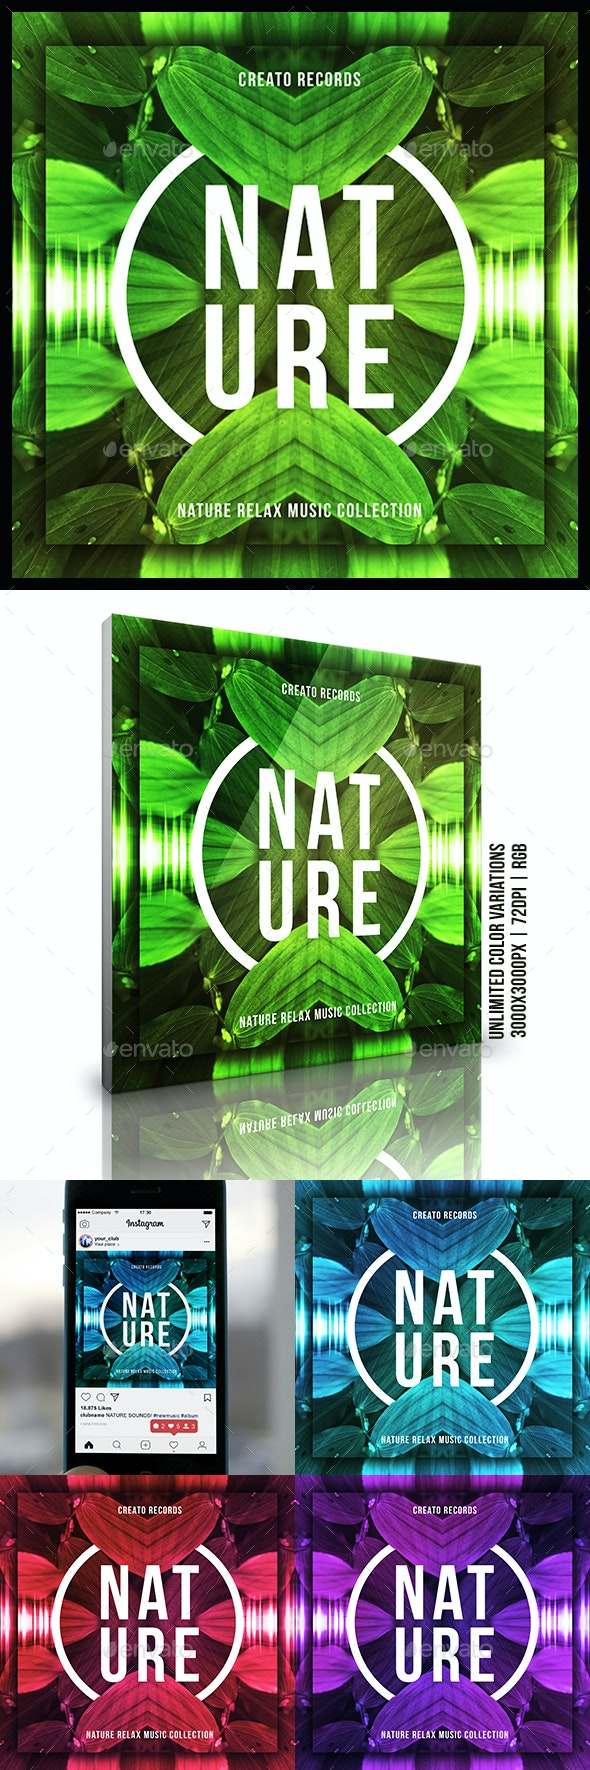 Nature Music Album Cover Artwork Template - Miscellaneous Social Media